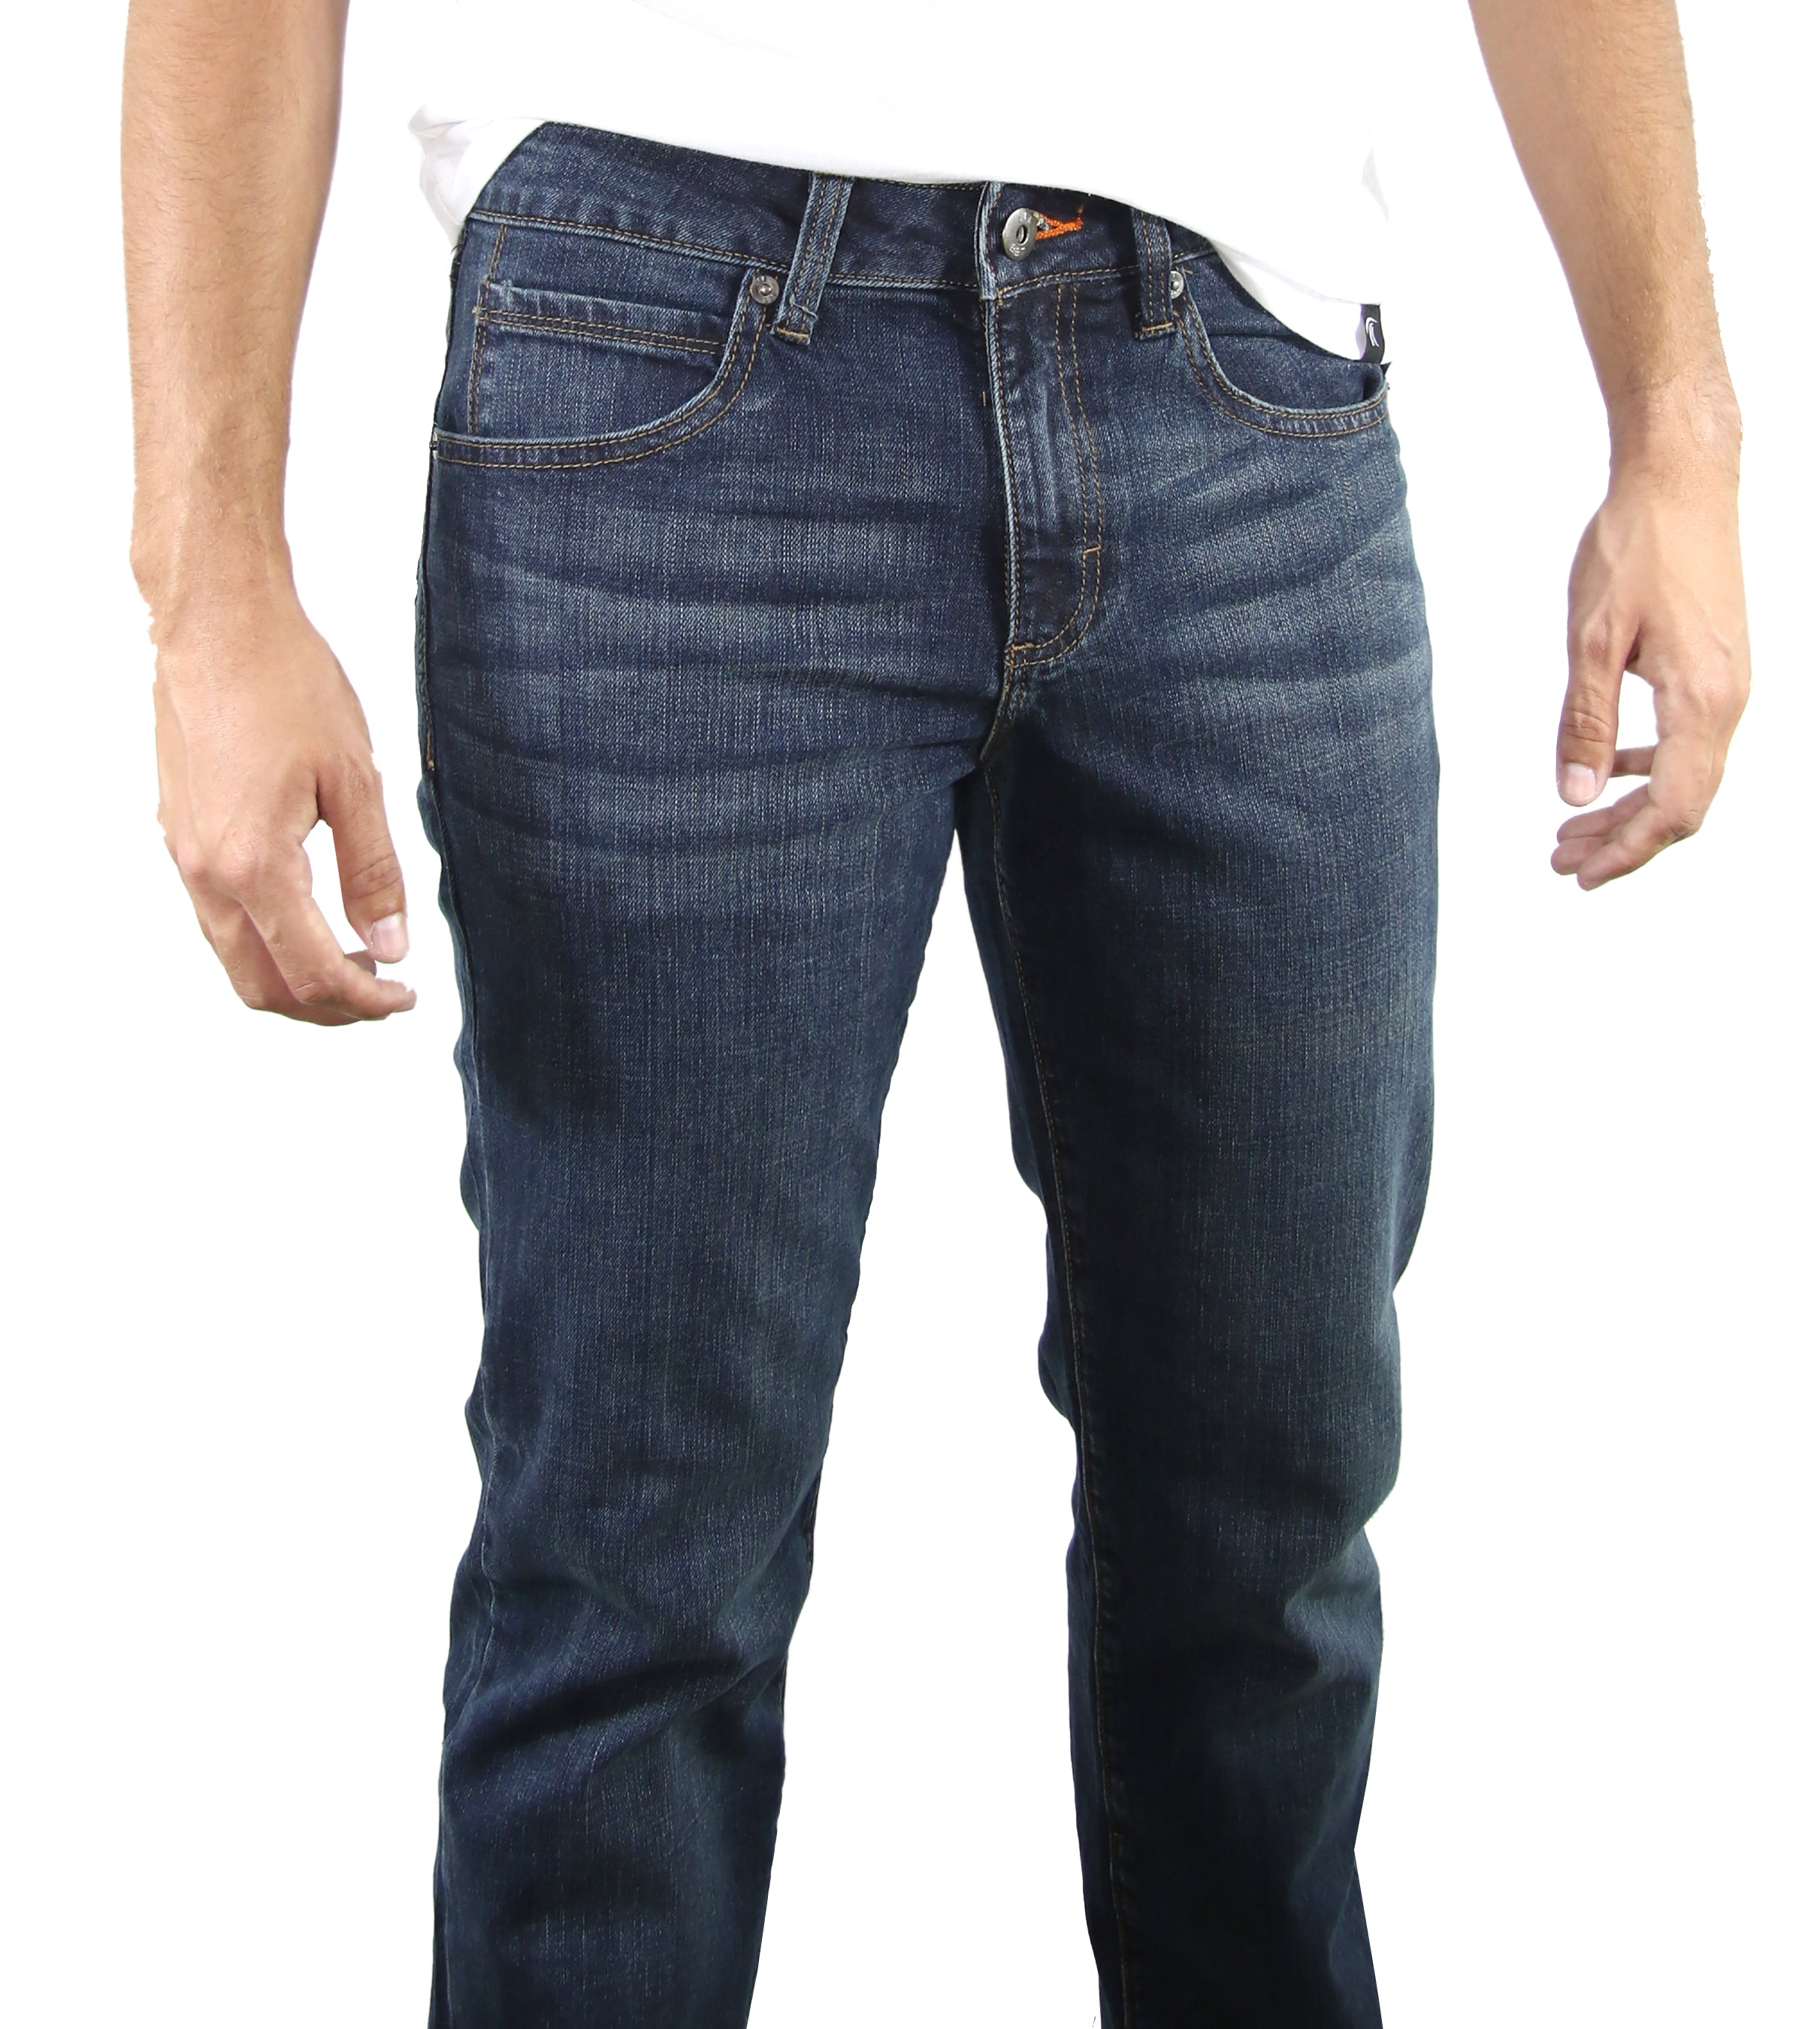 Mahón Lee Extreme Motion Straight Fit Tapered Leg